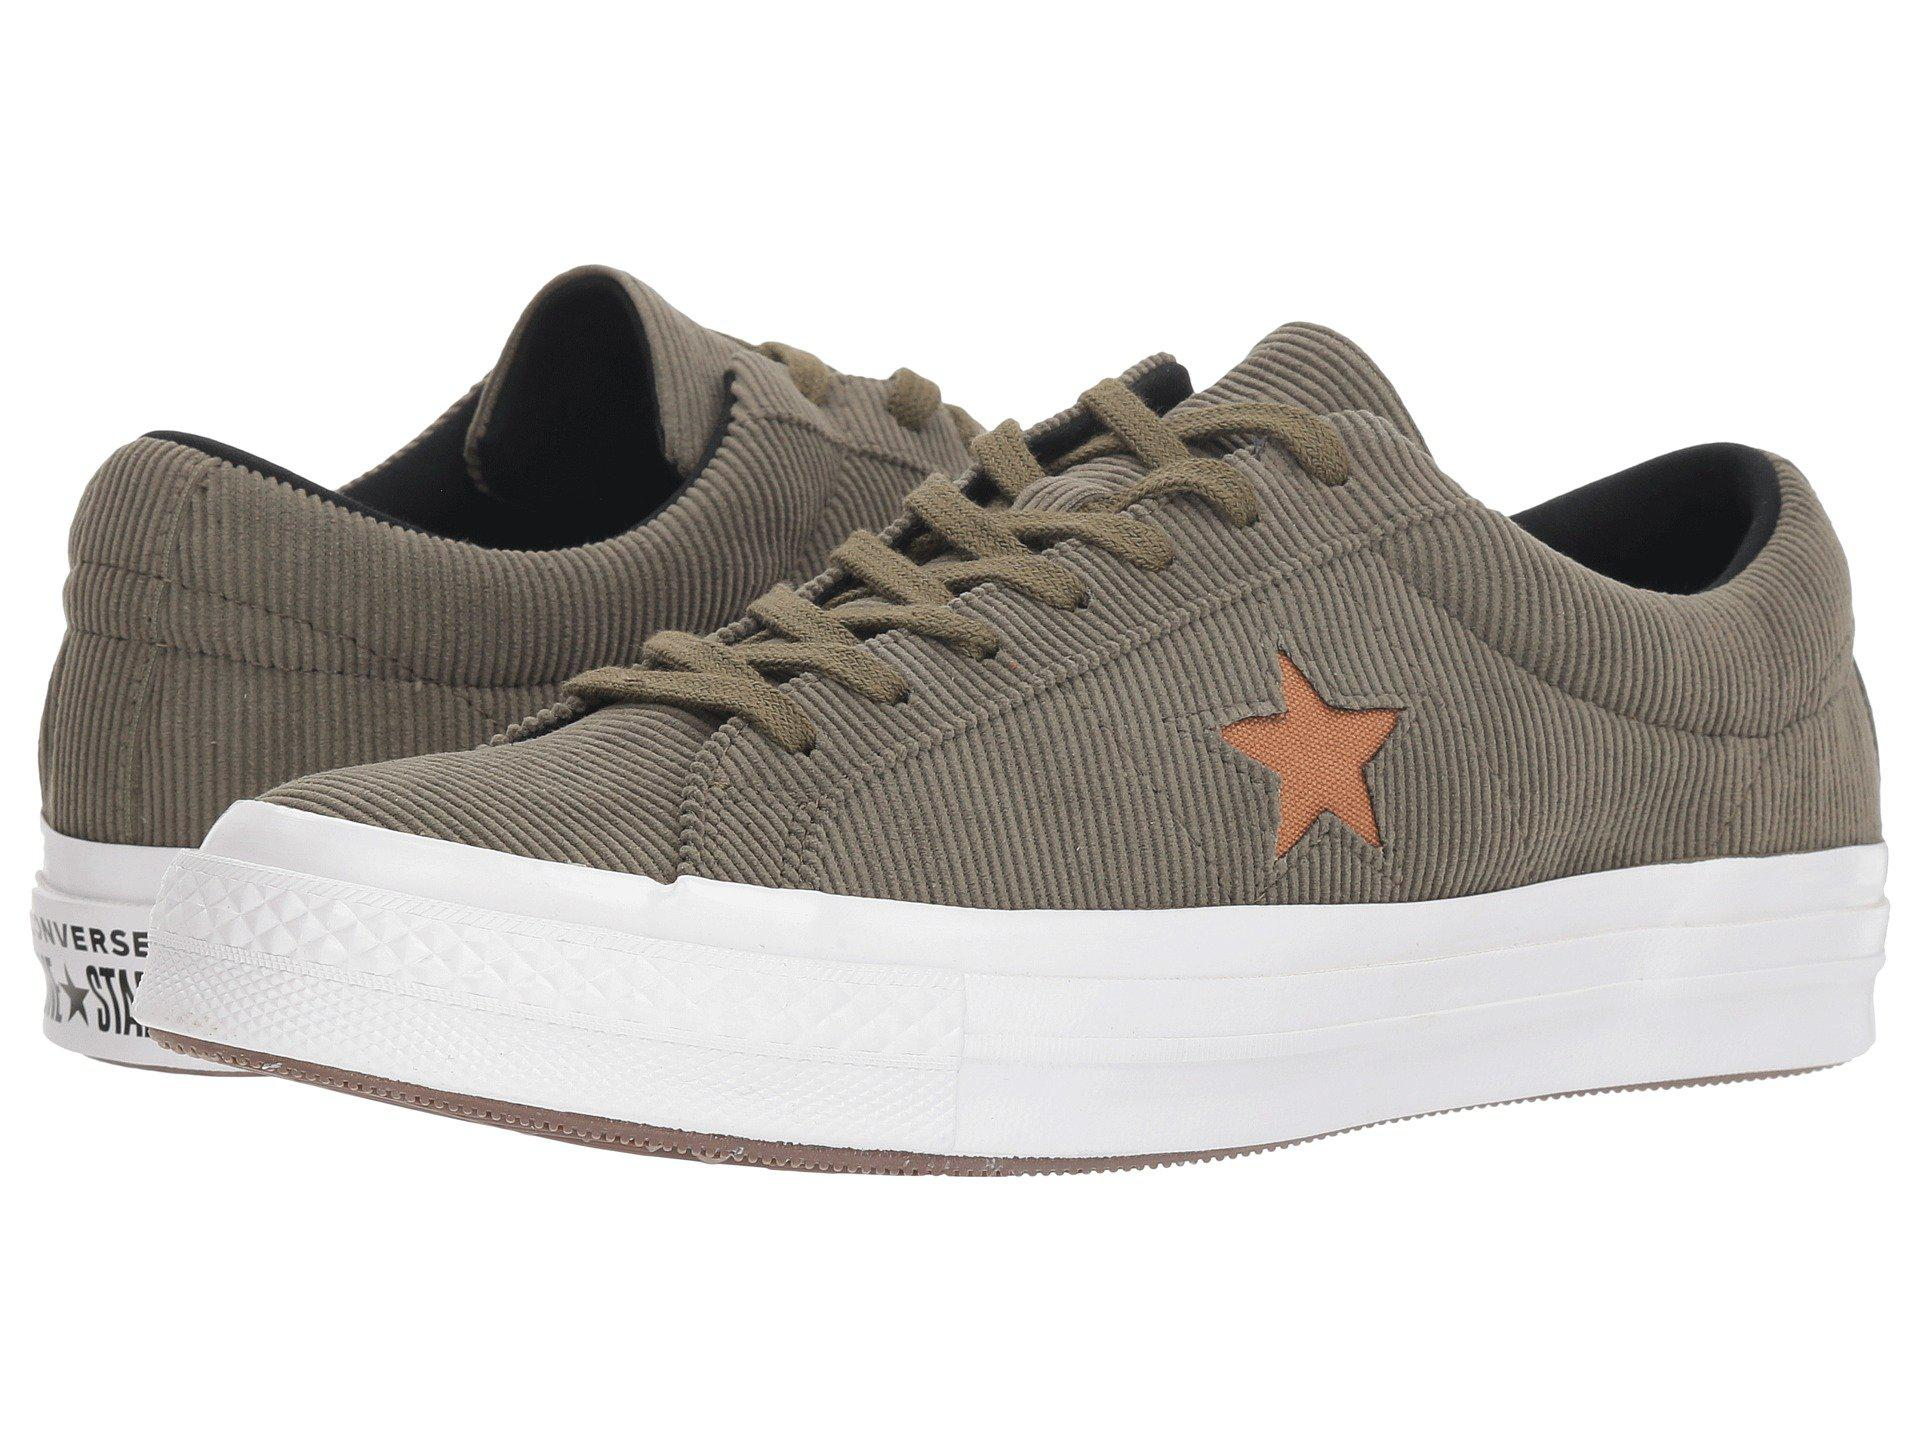 679346fa387a Converse - Multicolor One Star - Corduroy Ox - Lyst. View fullscreen